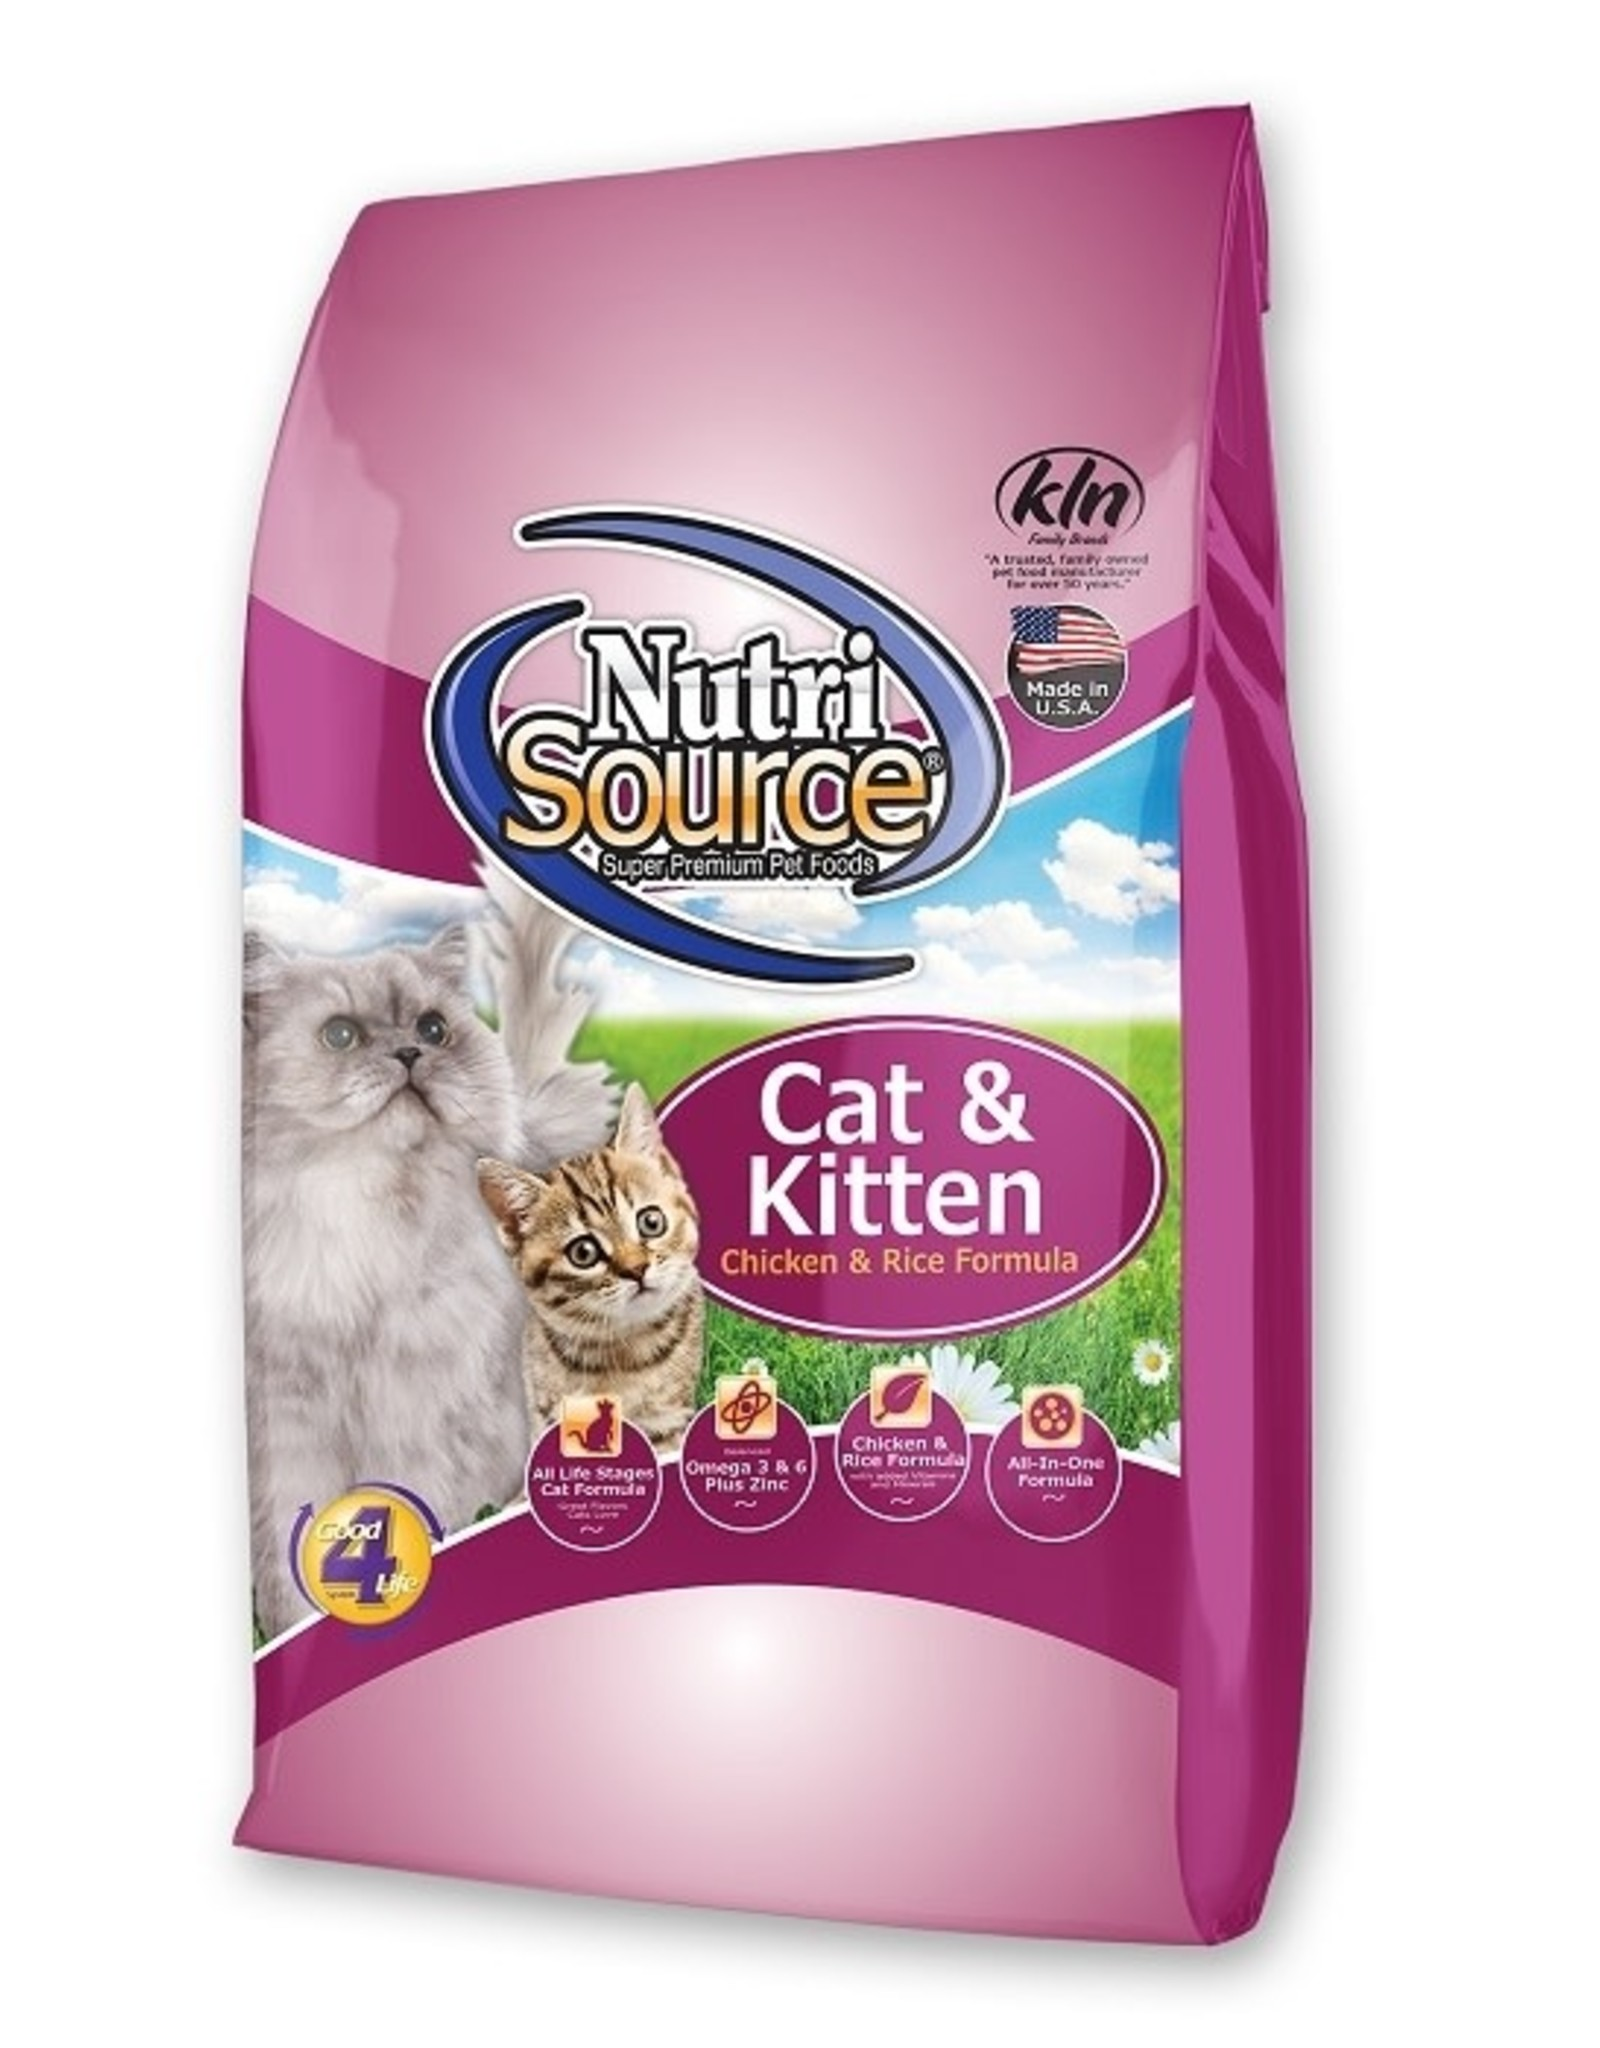 NUTRISOURCE NURTISOURCE CAT & Kitten Chicken & Rice 6.6 lb